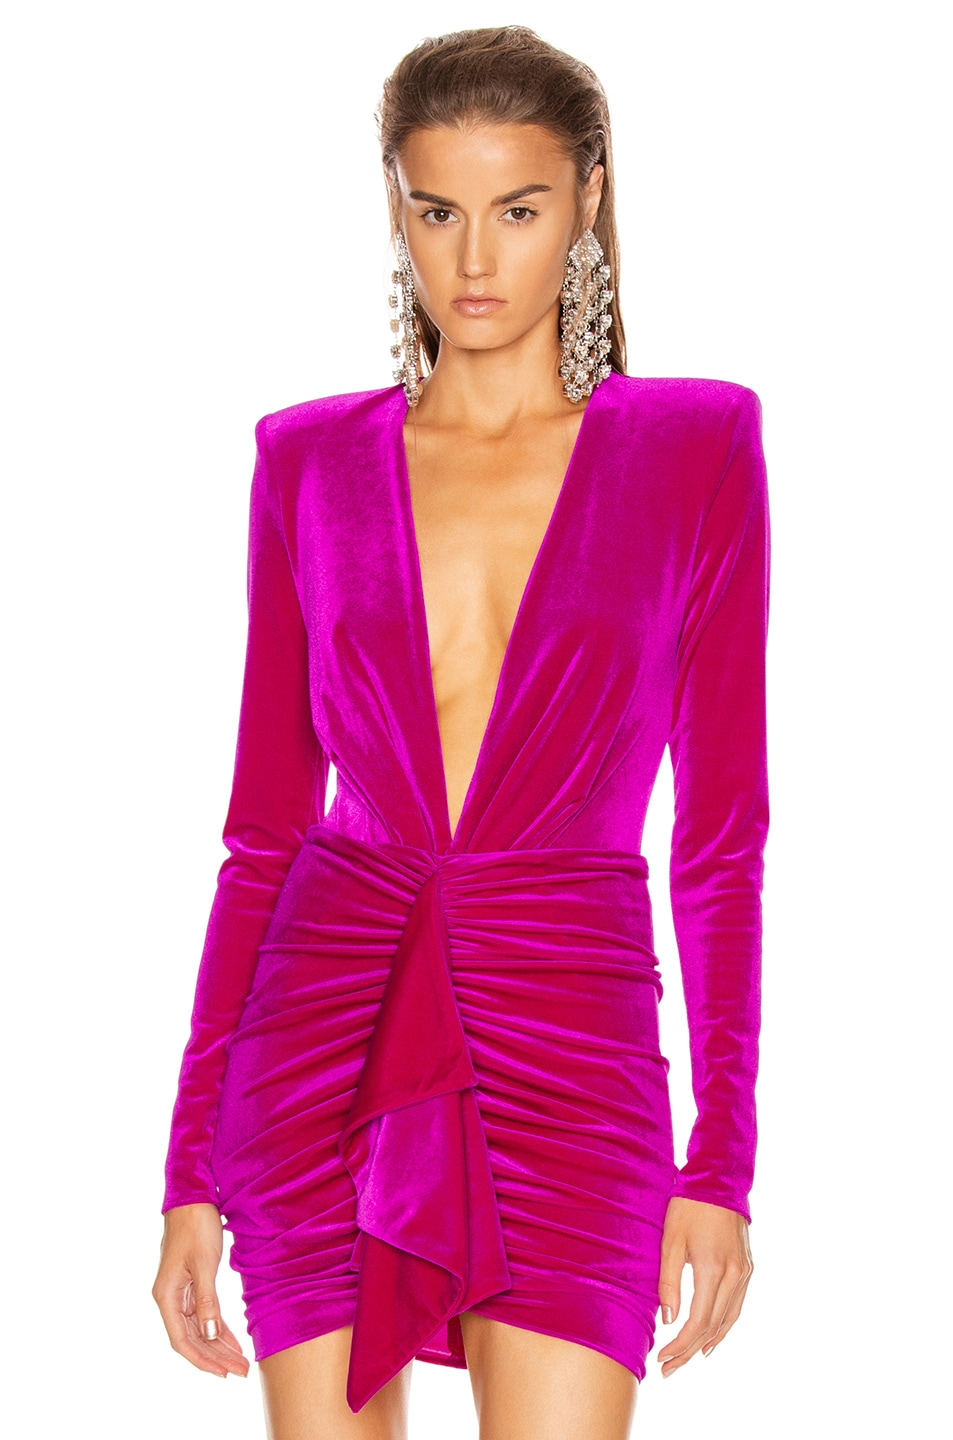 Image 1 of Alexandre Vauthier for FWRD Plunging Velvet Bodysuit in Fuchsia